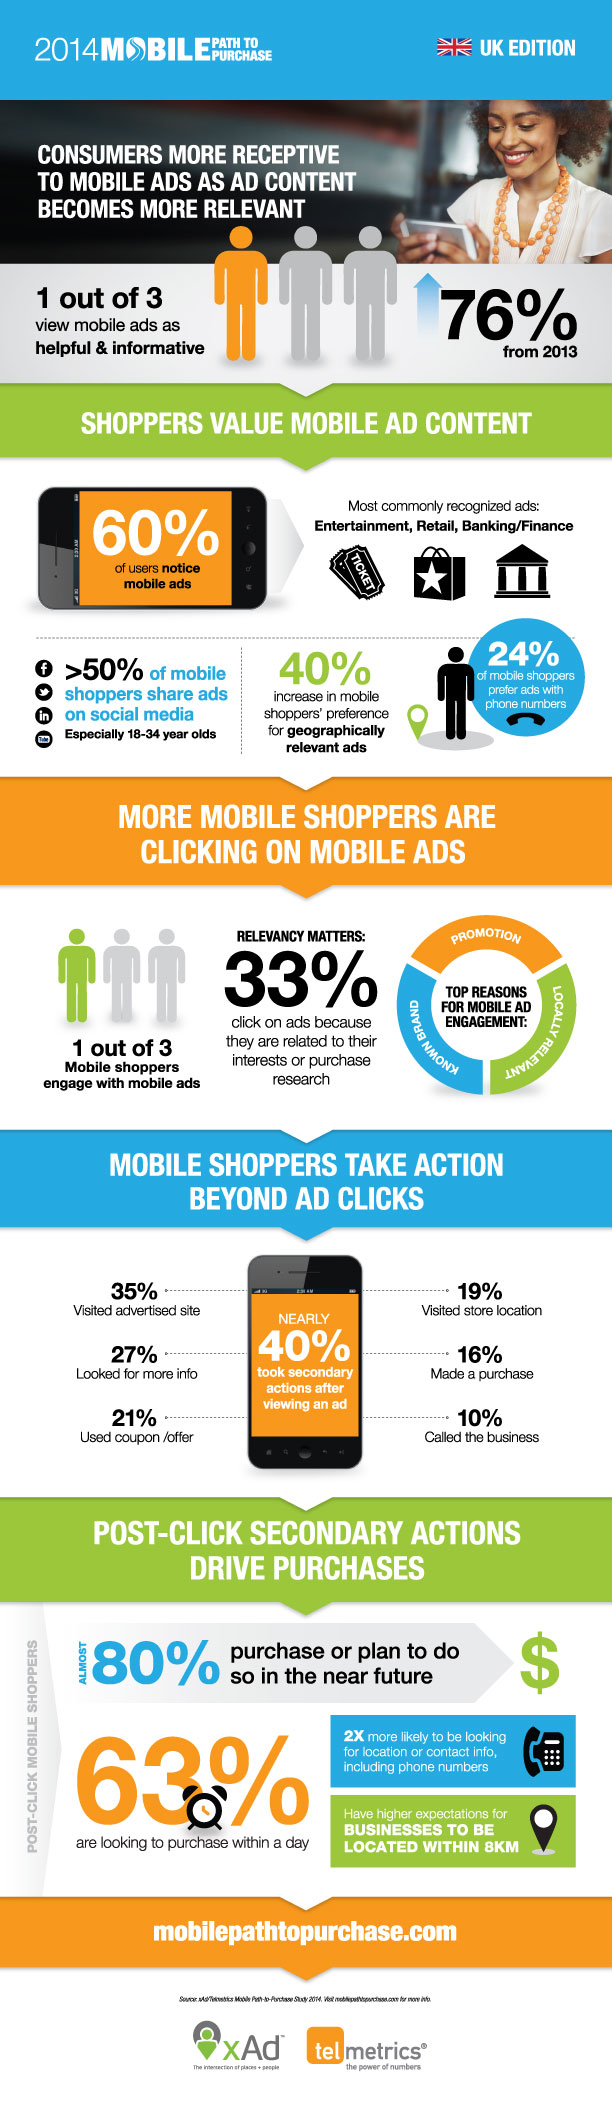 Infographic: UK Consumers Finding Mobile Ads More Informative and Helpful